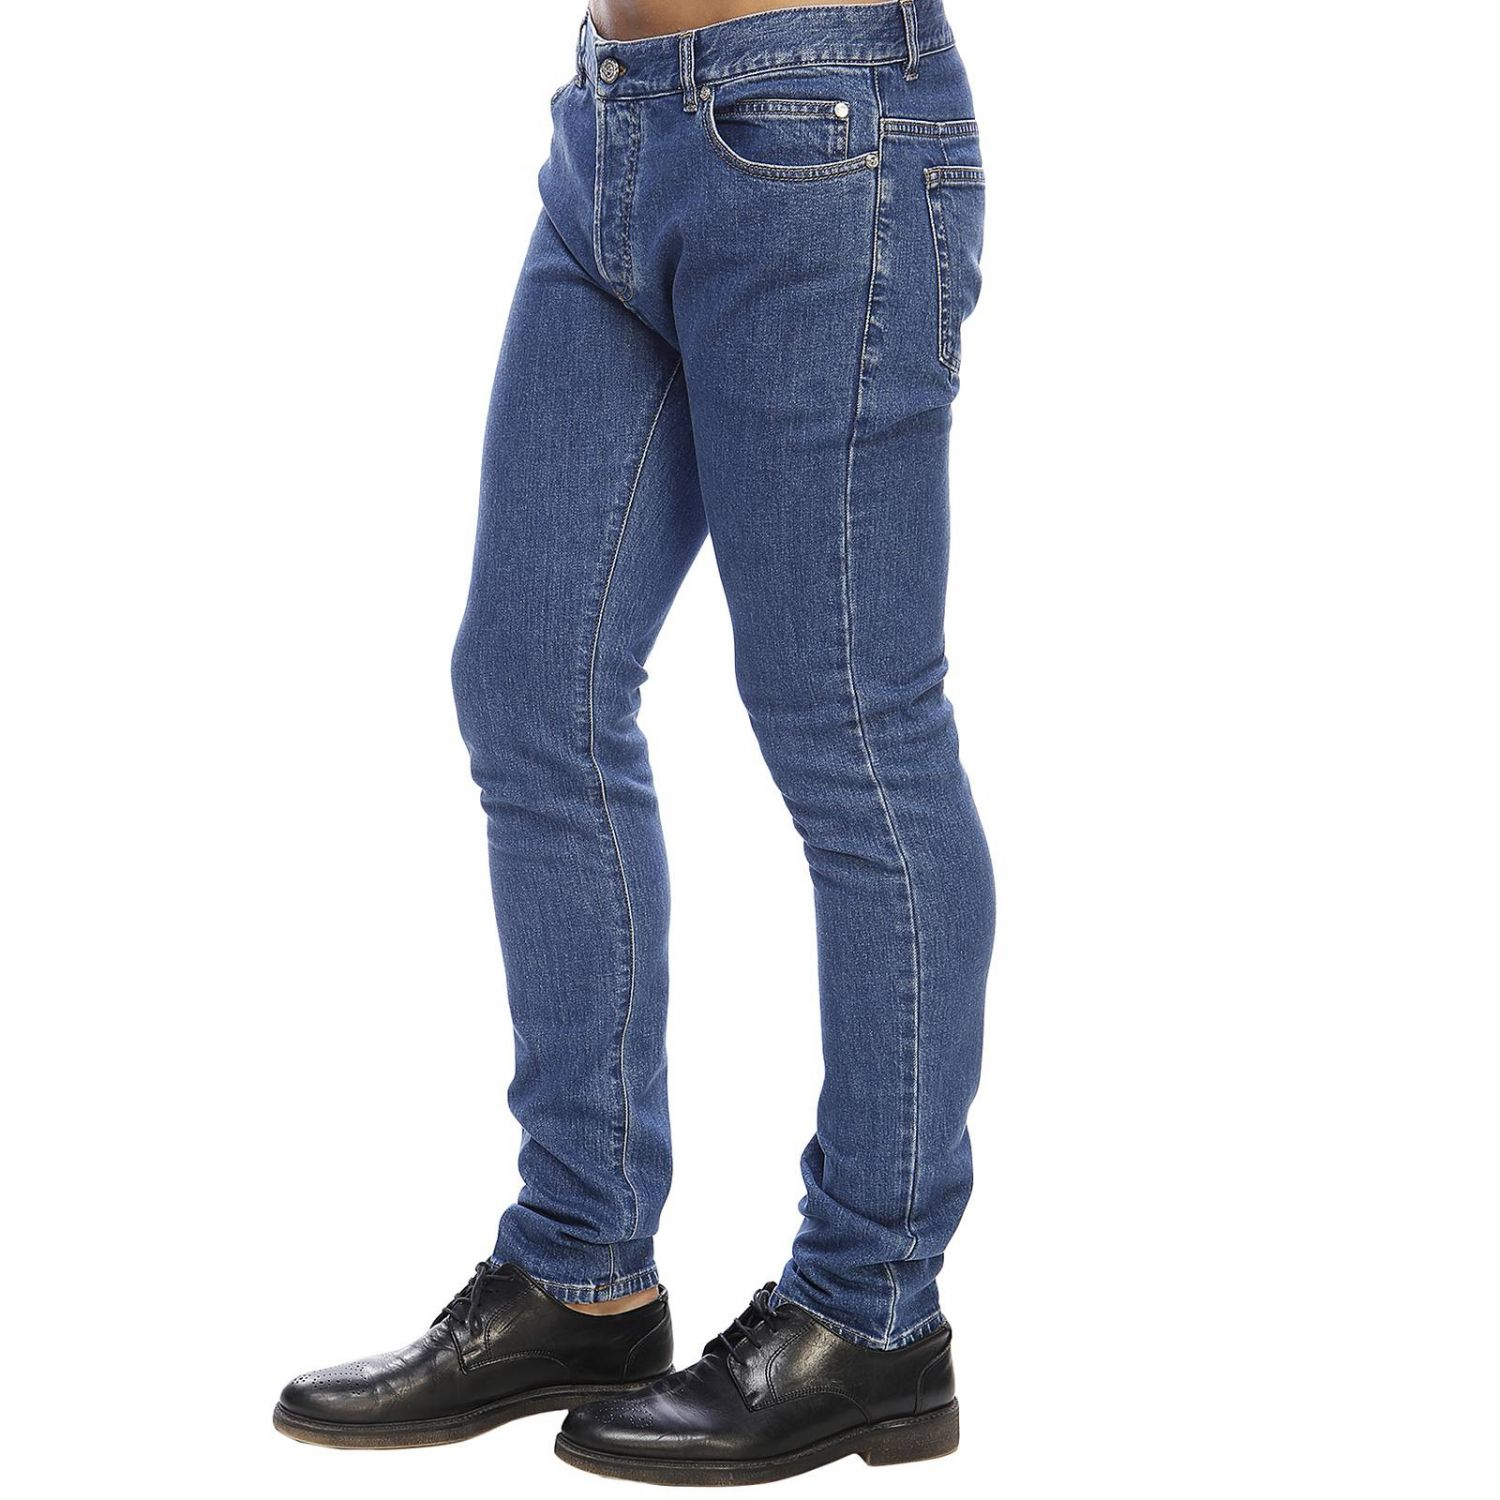 Jeans men Balmain denim 2